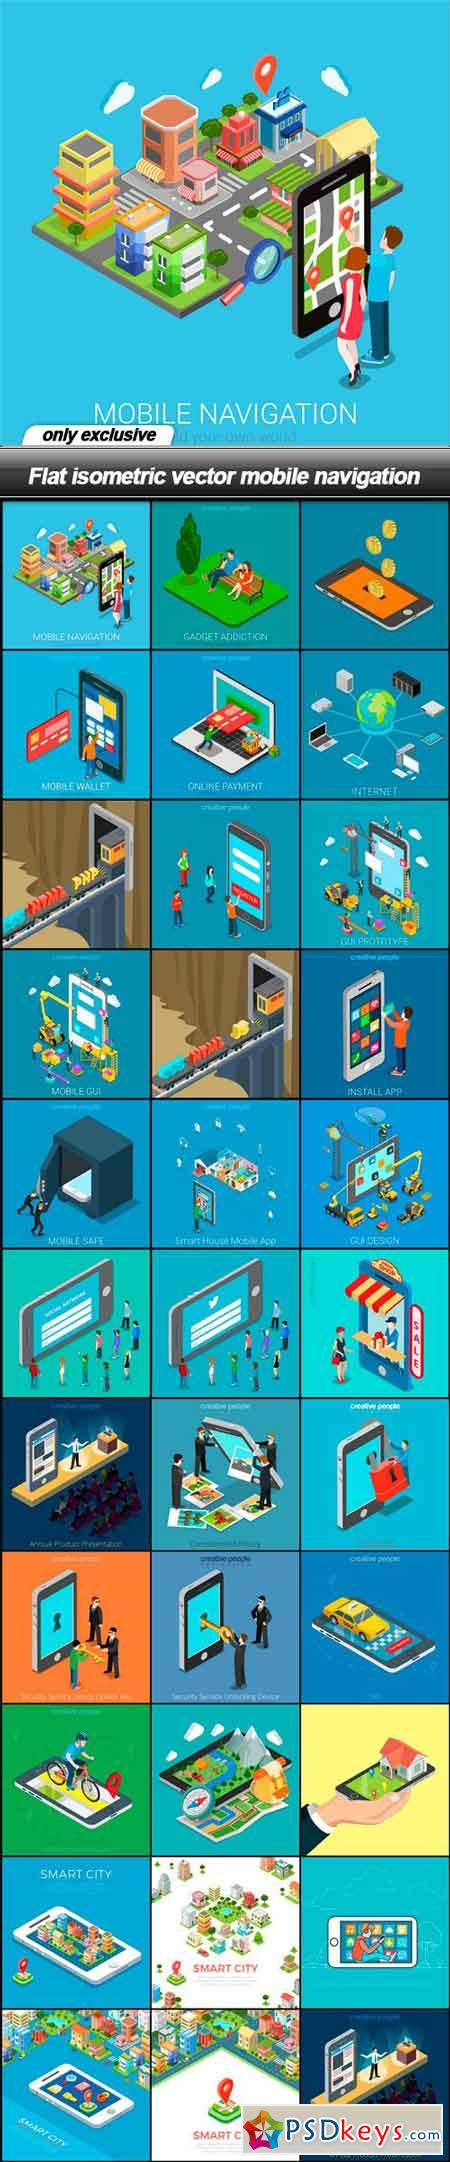 Flat isometric vector mobile navigation - 32 EPS